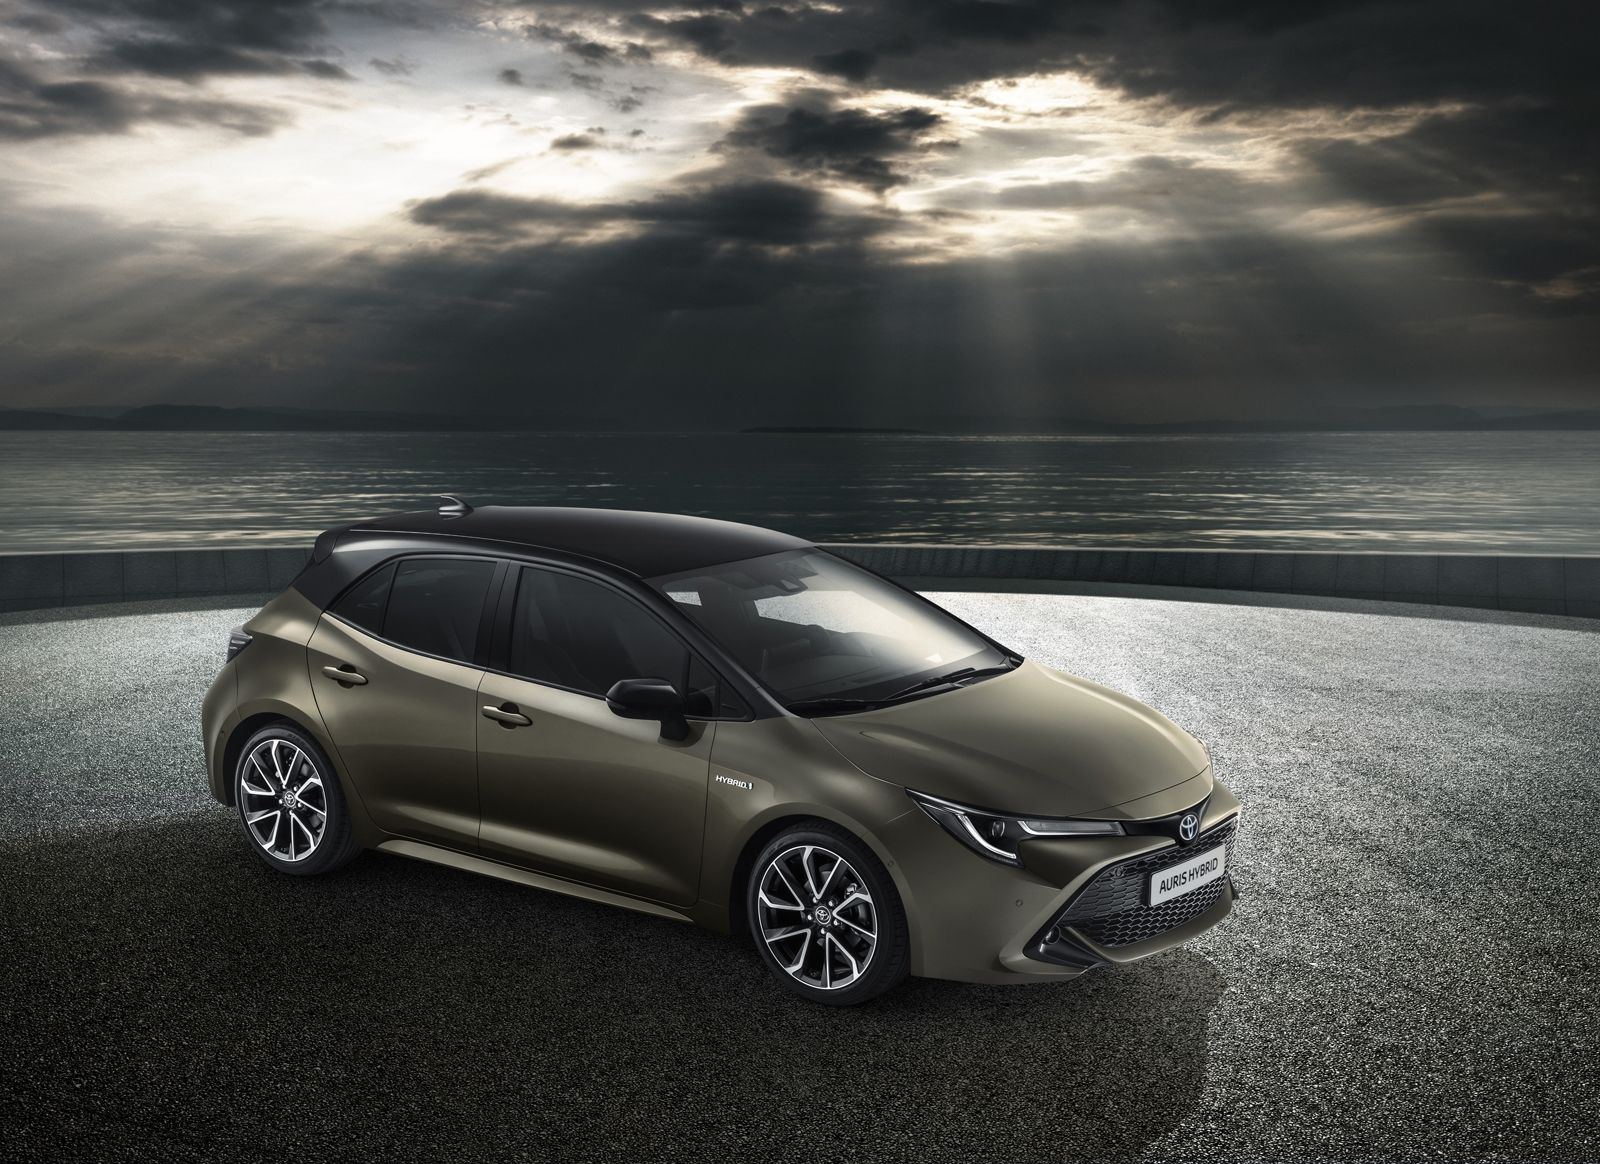 2020 Toyota Auris Review, Release Date, Redesign, Hybrid